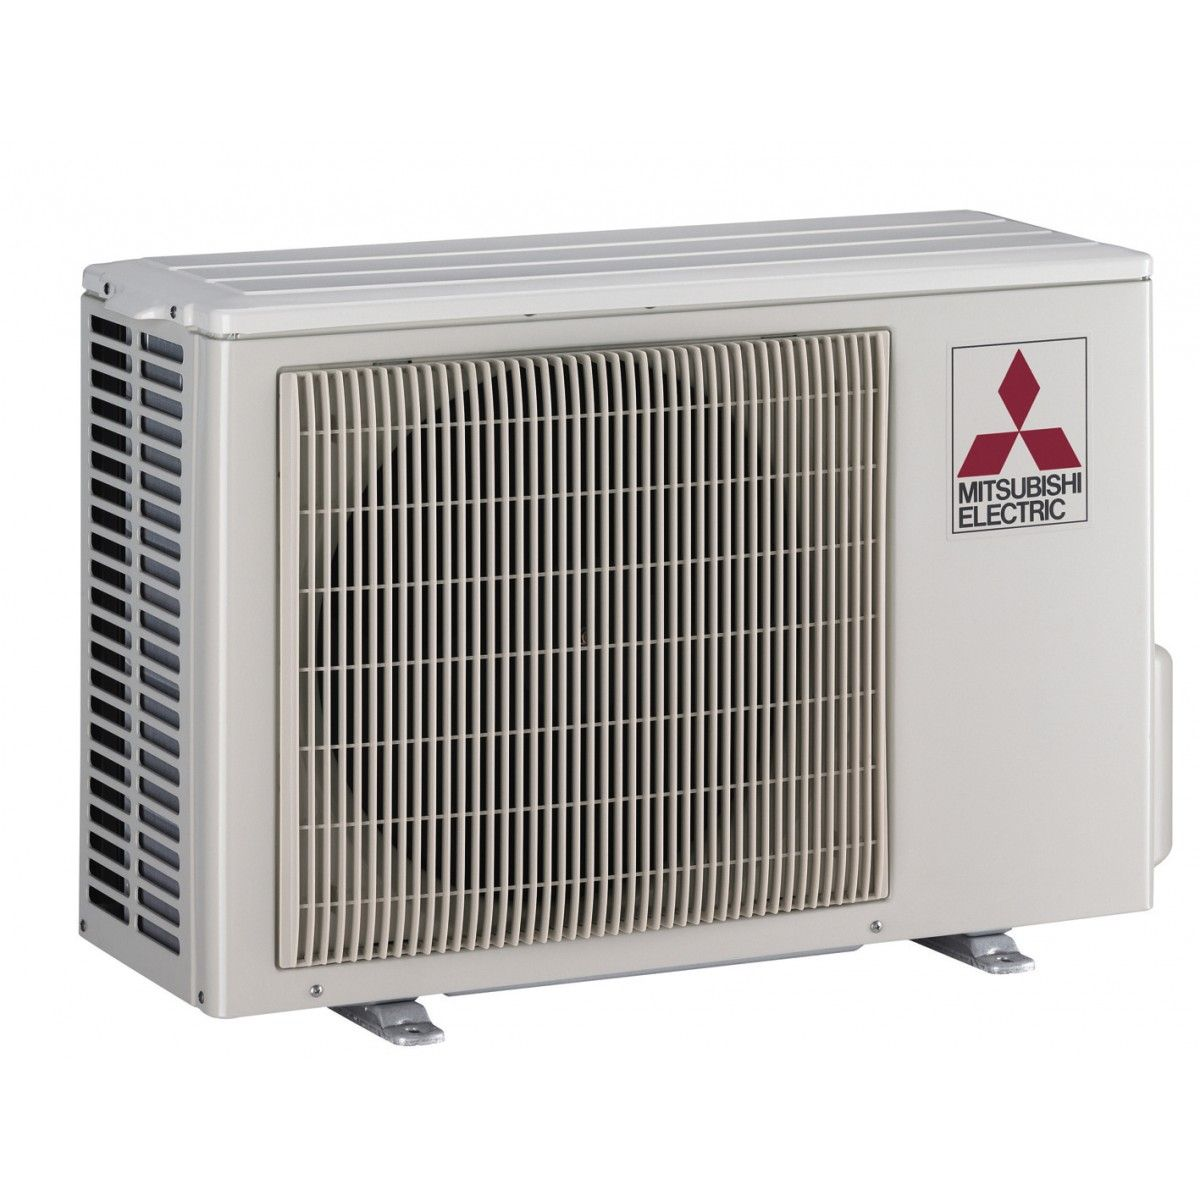 15k btu mitsubishi muygl air conditioner outdoor unit in outdoor units ductless ac components. Black Bedroom Furniture Sets. Home Design Ideas